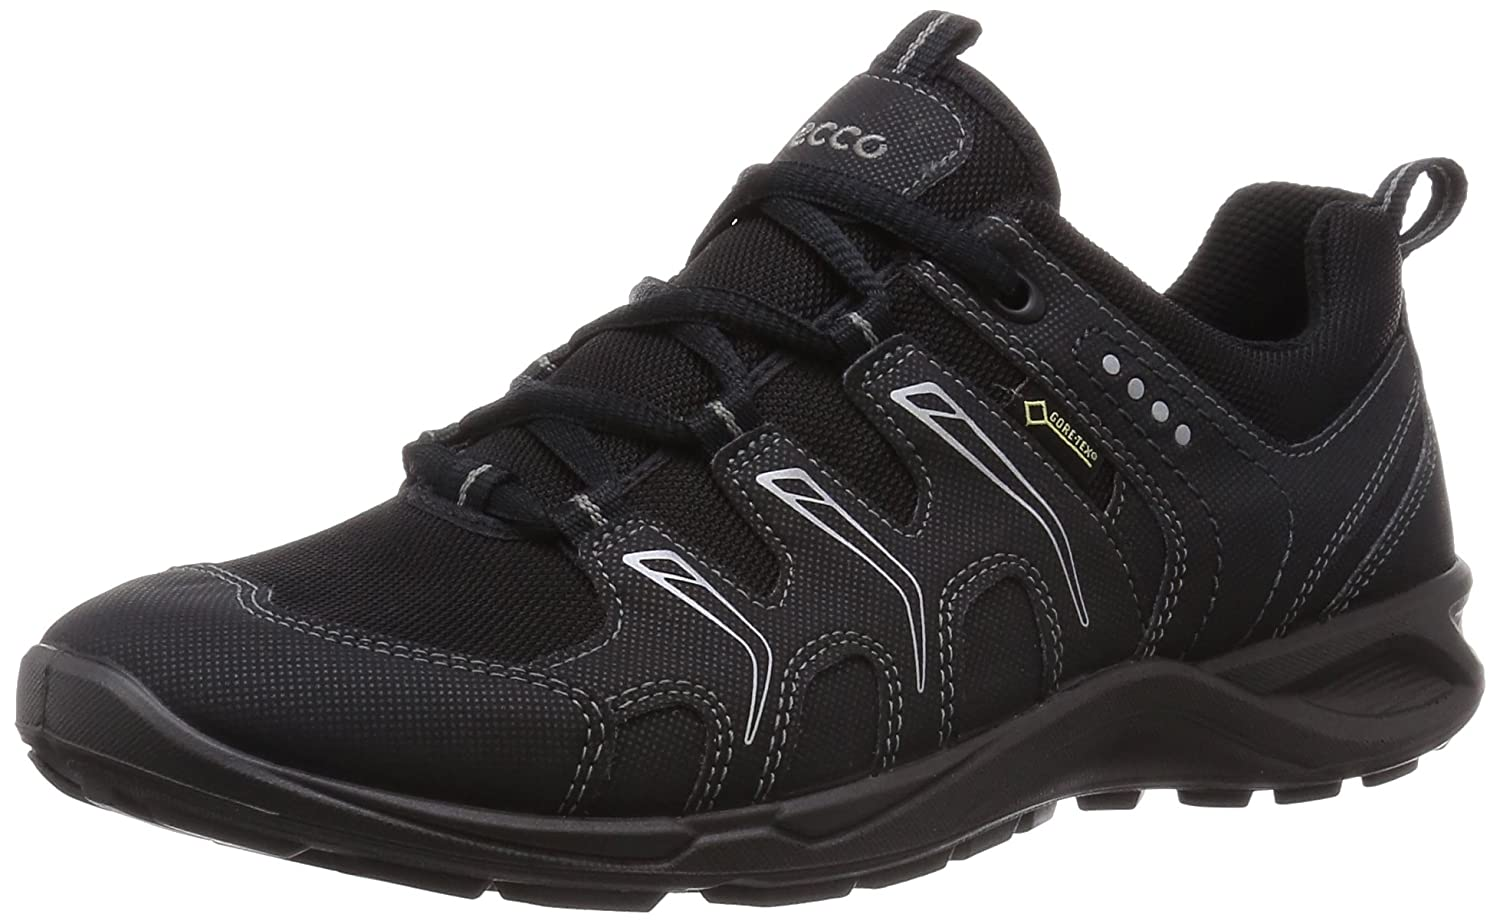 TALLA 39 EU. Ecco Terracruise Black/Black Synthetic/Textil 841043 - Zapatillas de Fitness para Mujer, Color Gris, Talla 36